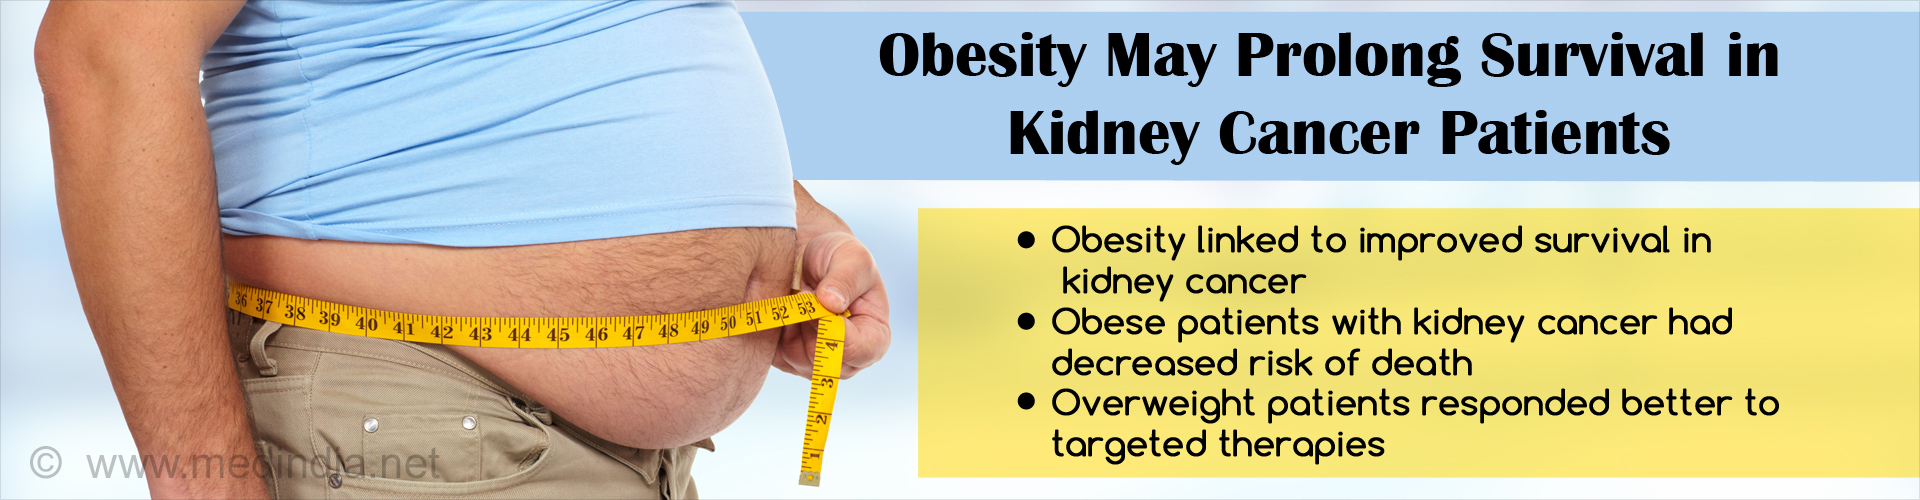 Obese Kidney Cancer Patients Survive Longer Compared to Normal BMI Patients